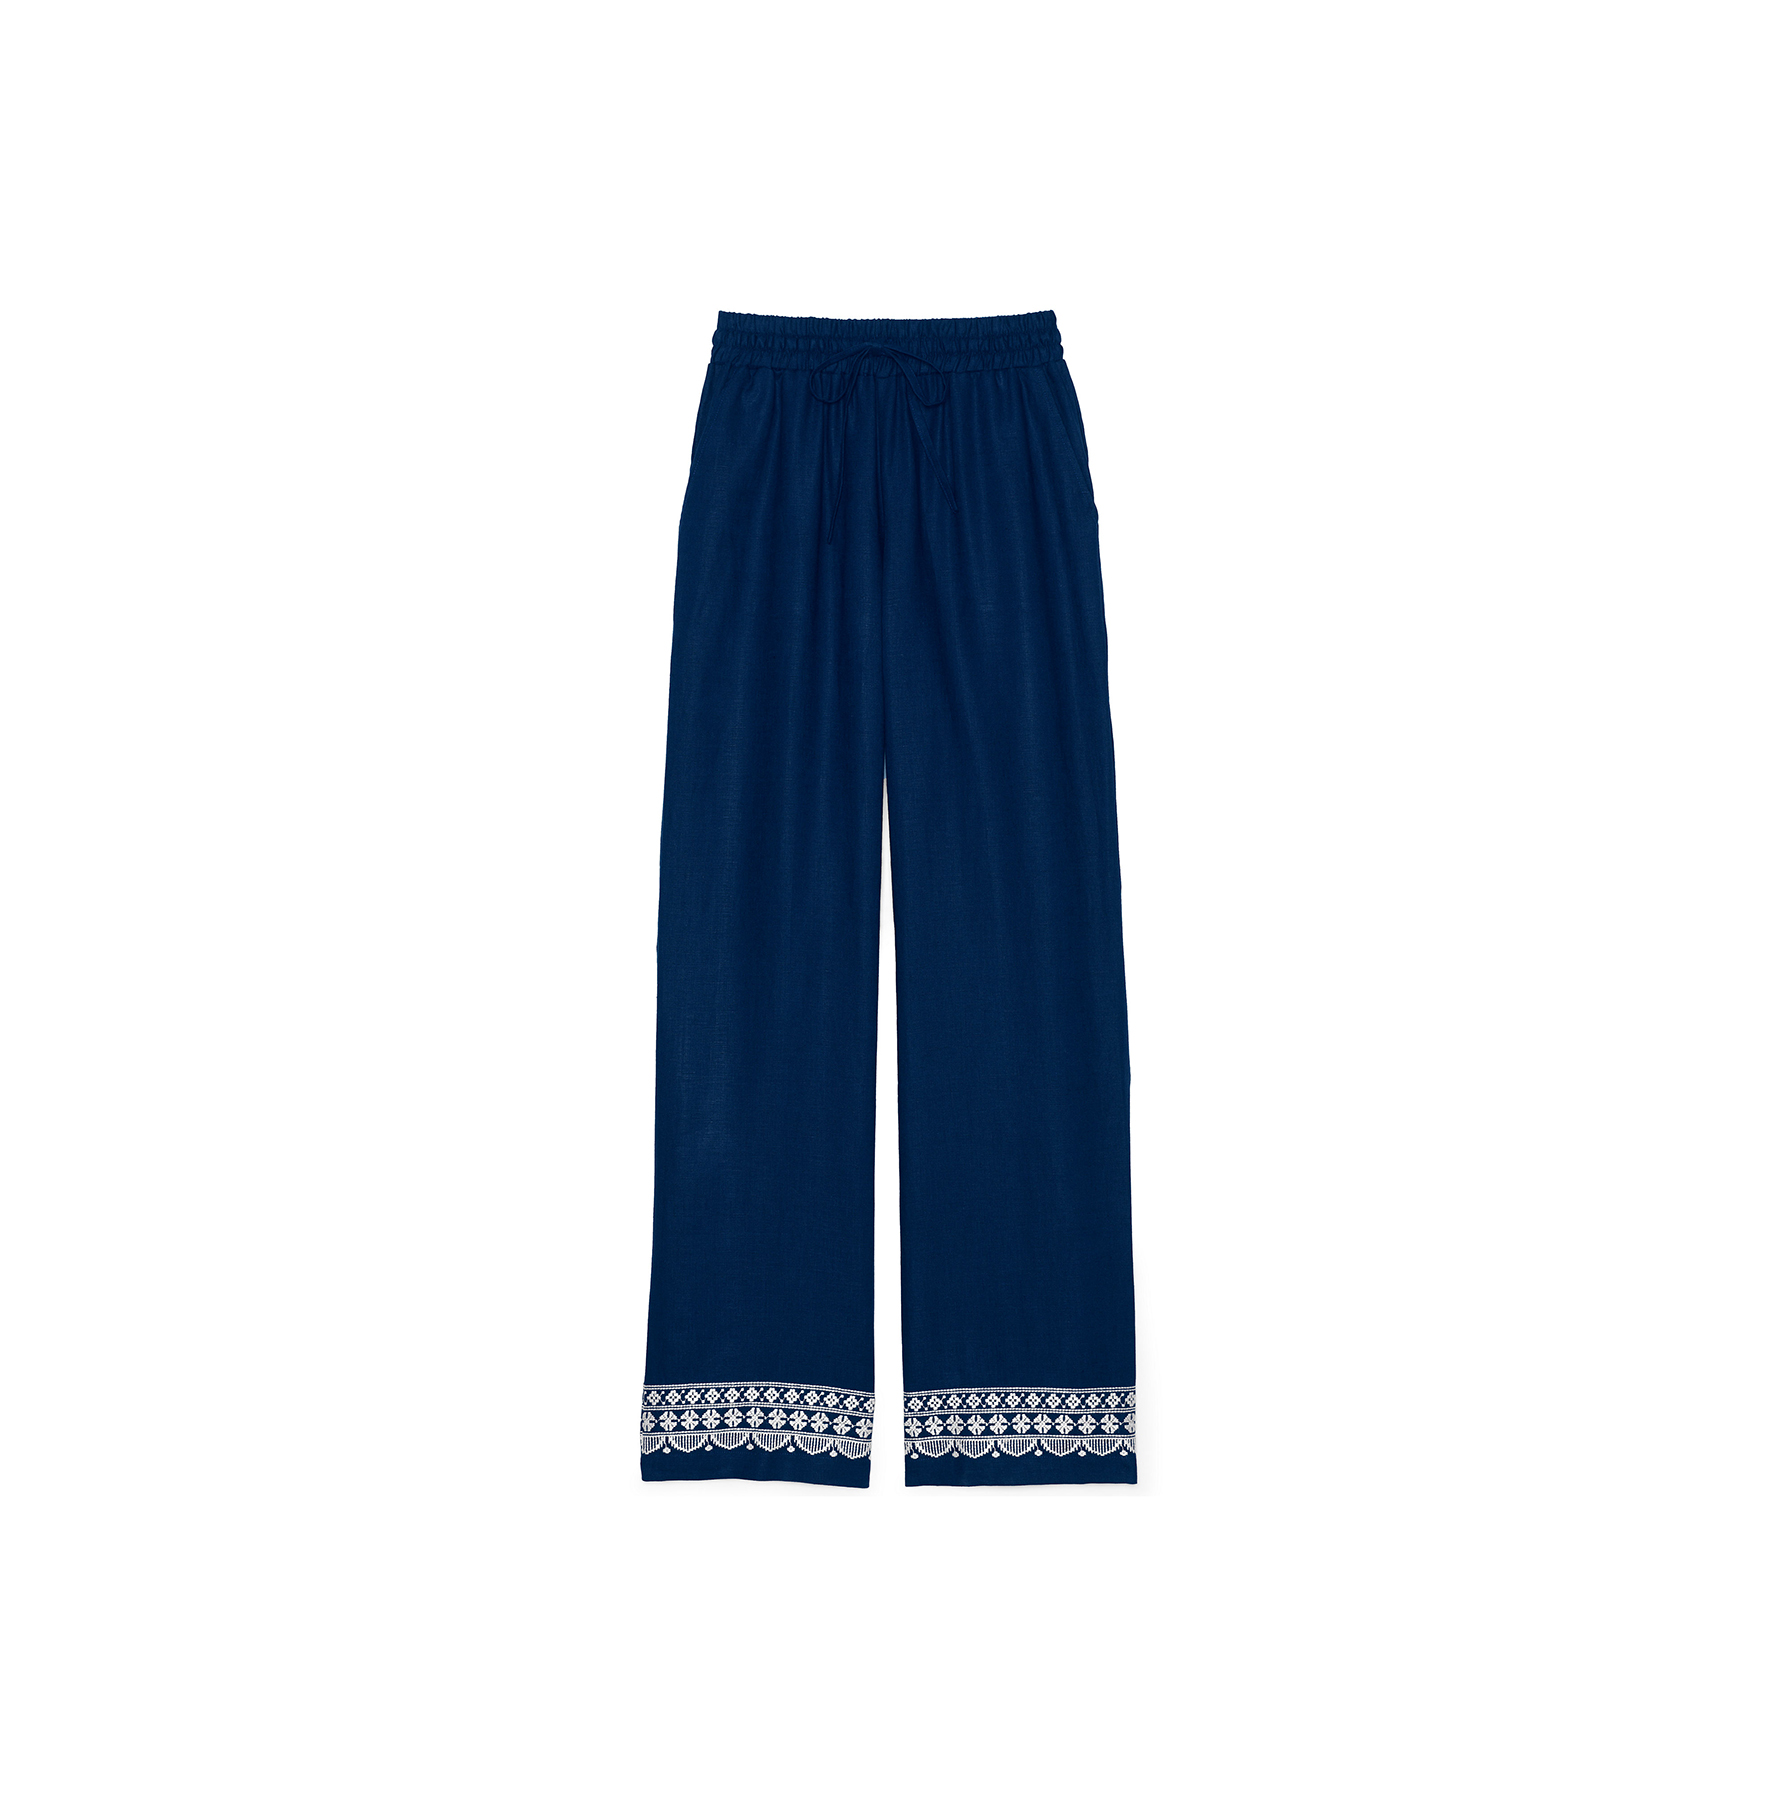 embroidered-linen-cover-up-pants